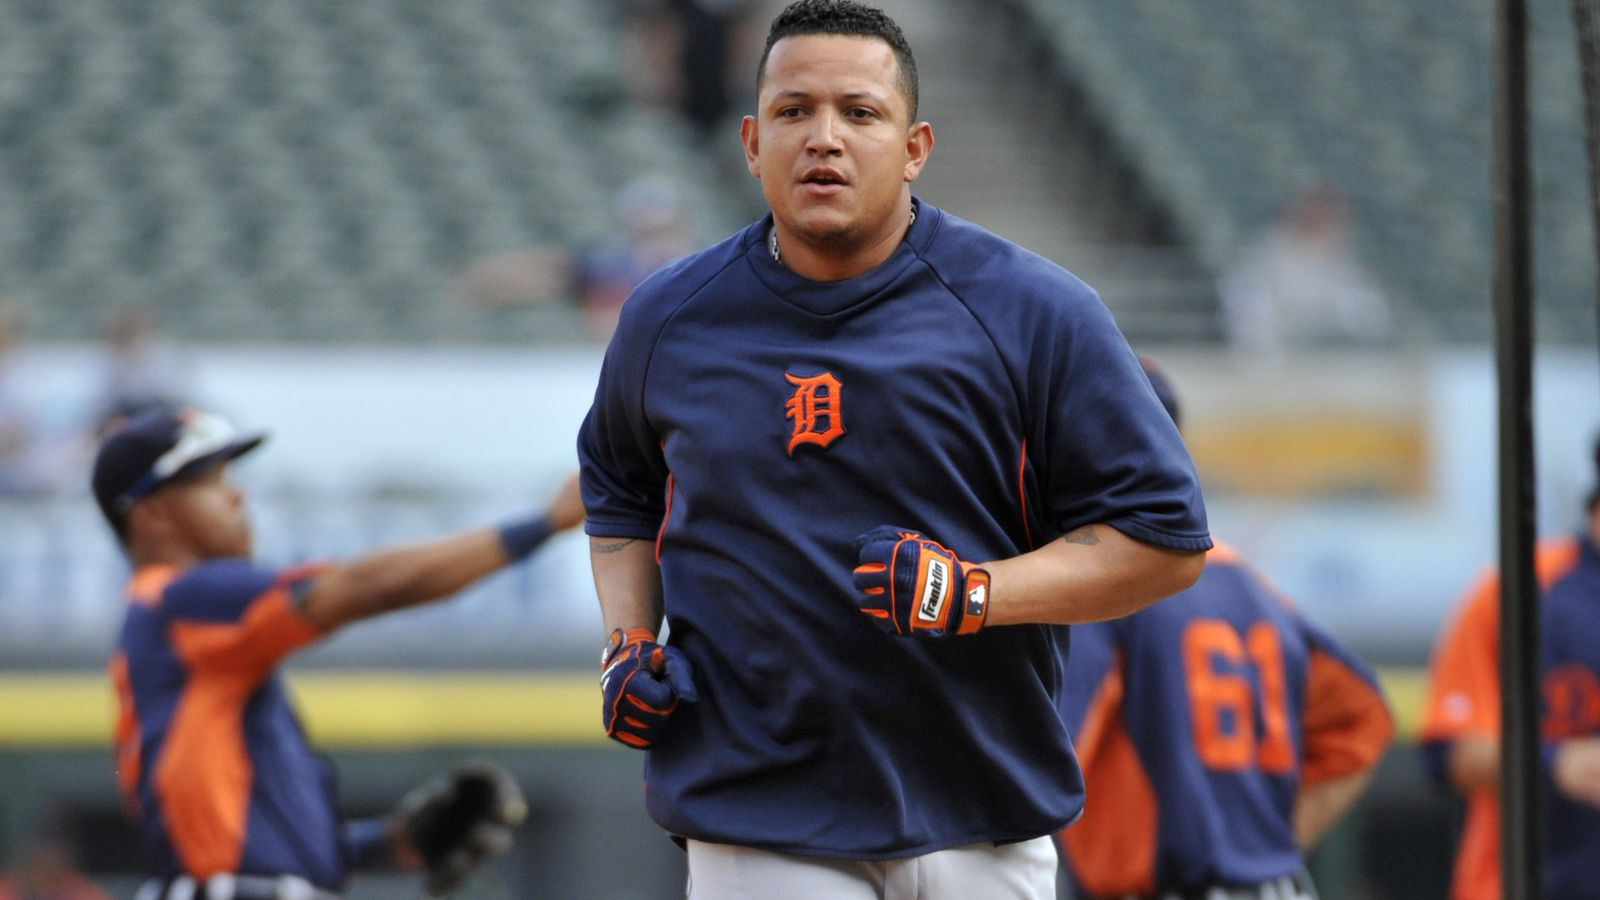 Miguel Cabrera injury: Sore hip flexor forces 3B from game ... Miguel Cabrera Muscle